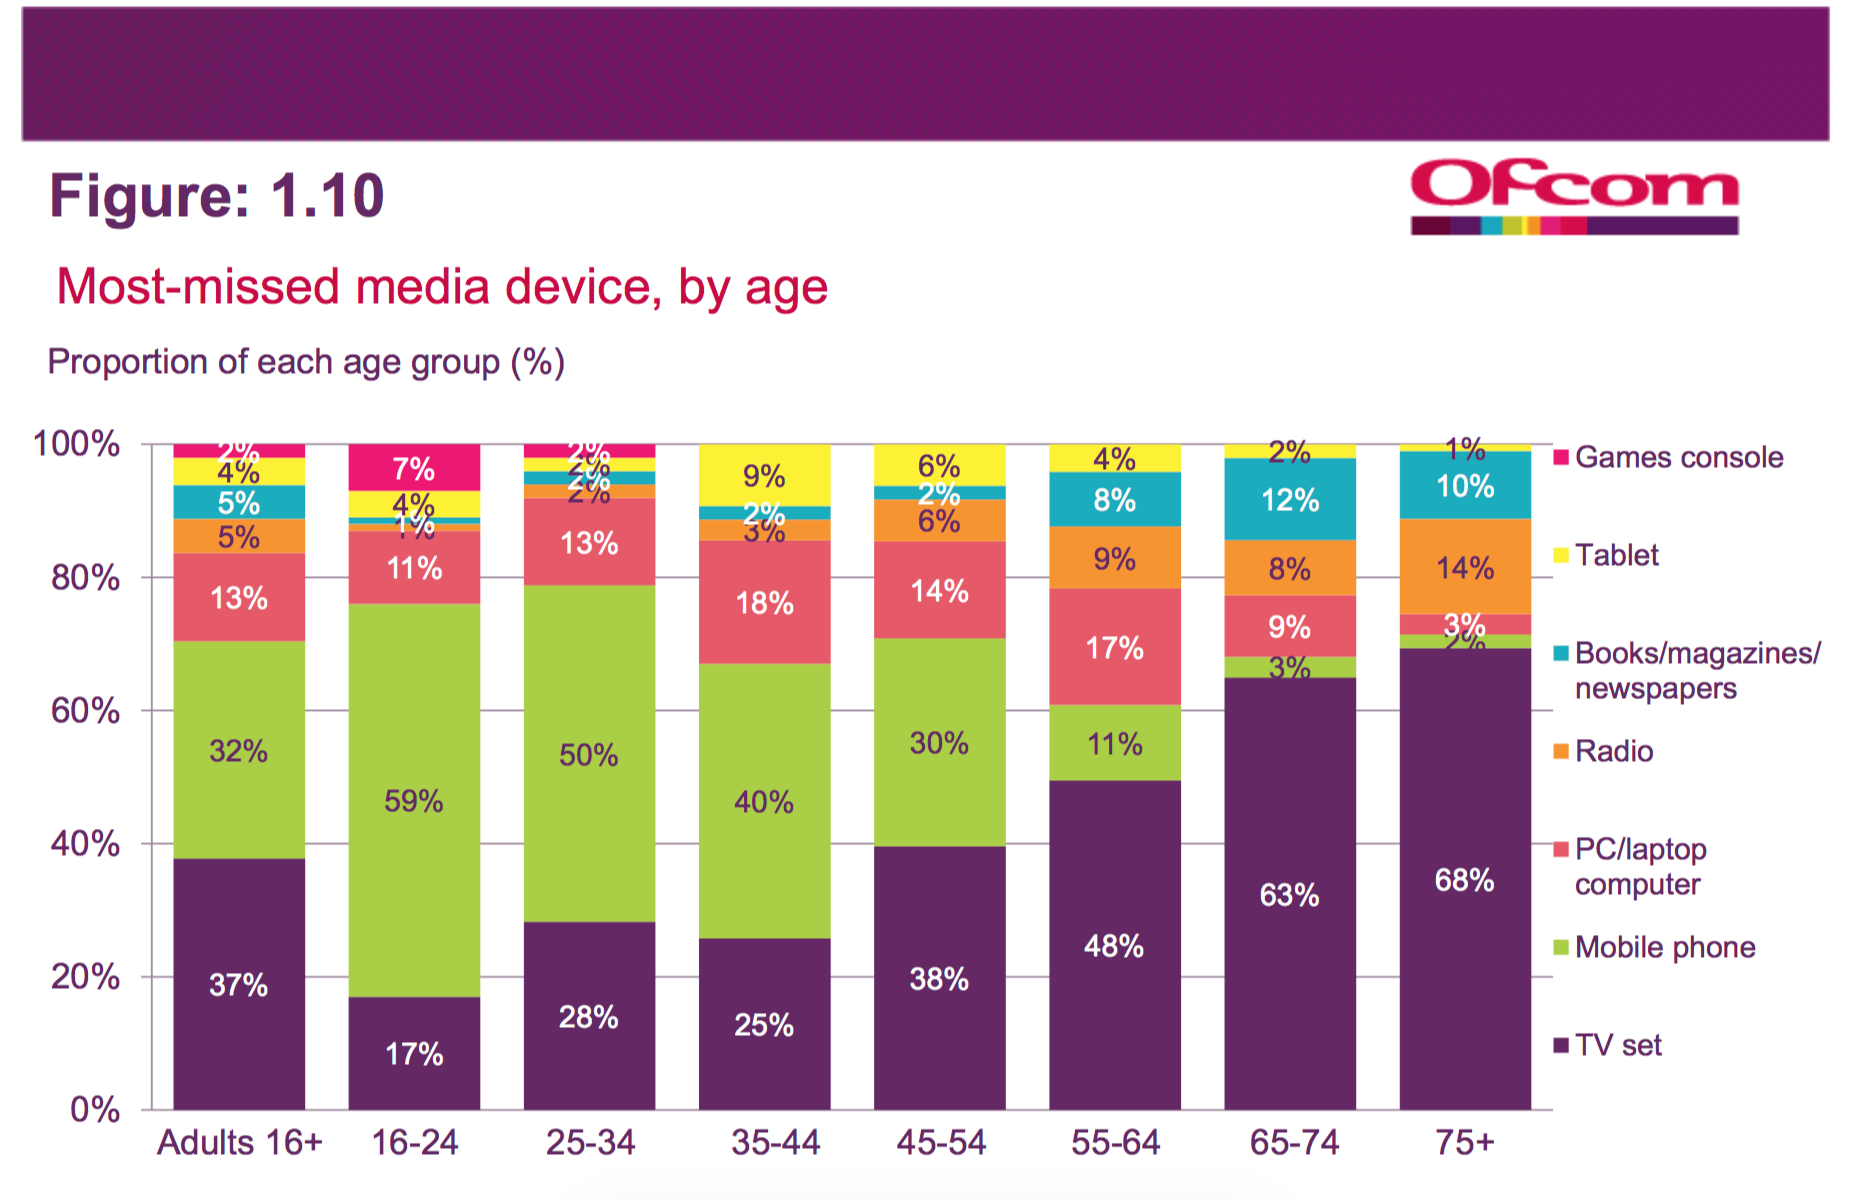 ofcom-devices-missed-the-most